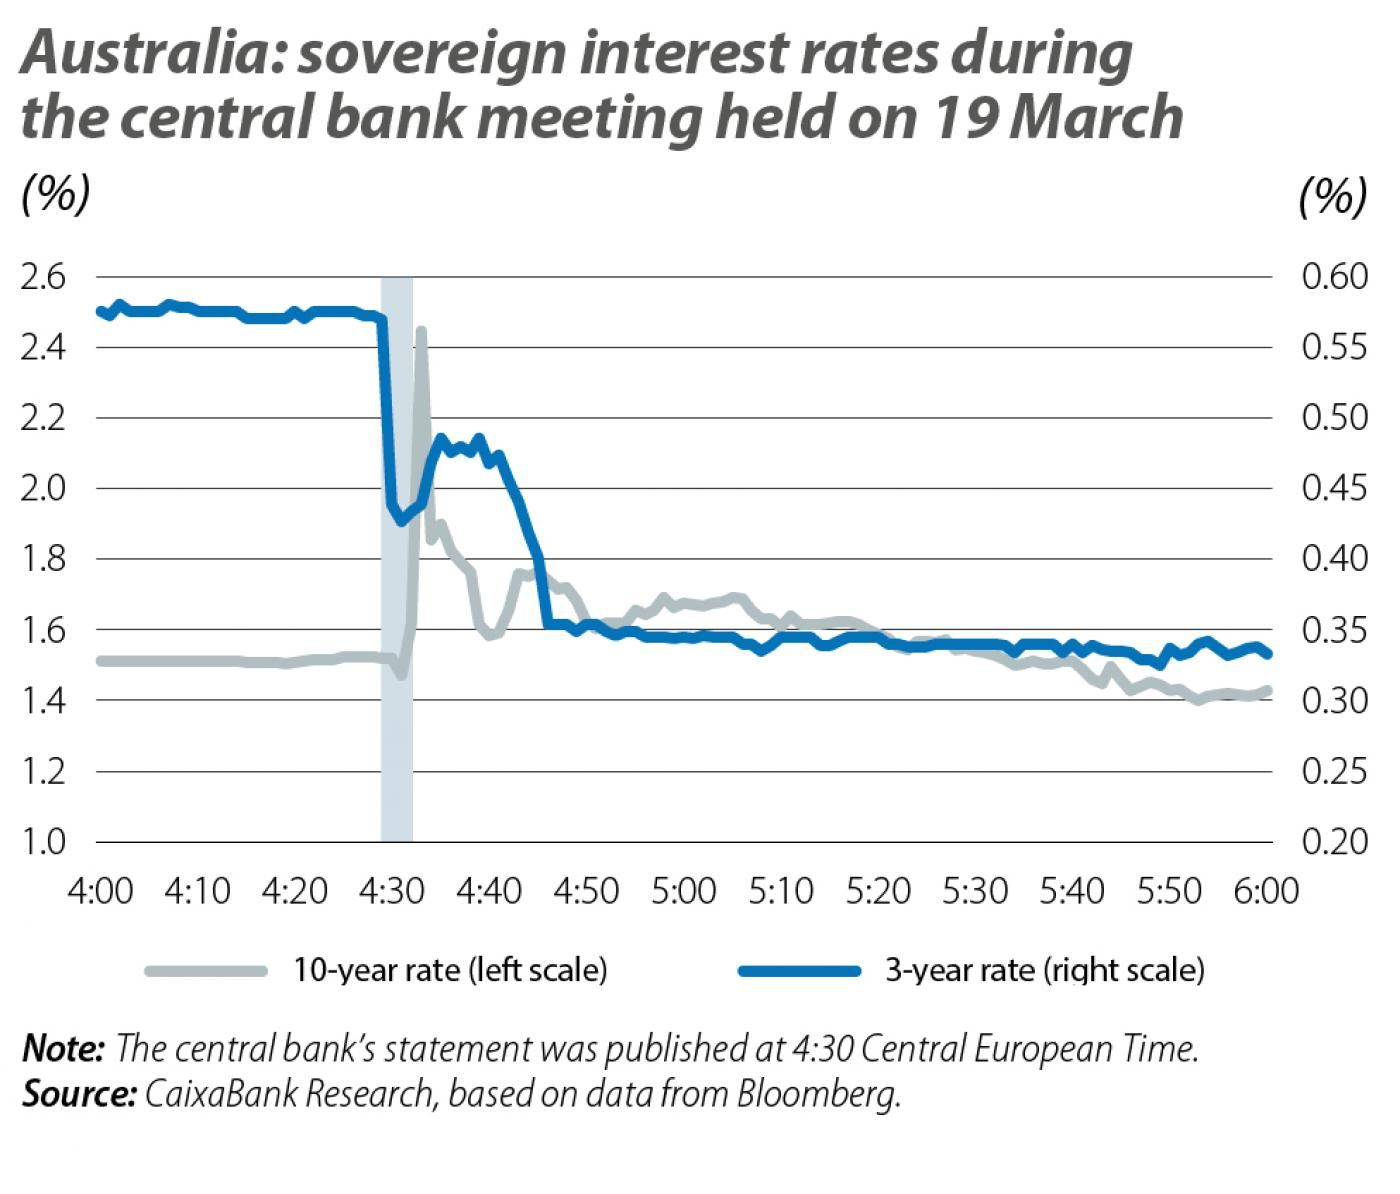 Australia: sovereign interest rates during the central bank meeting held on 19 March